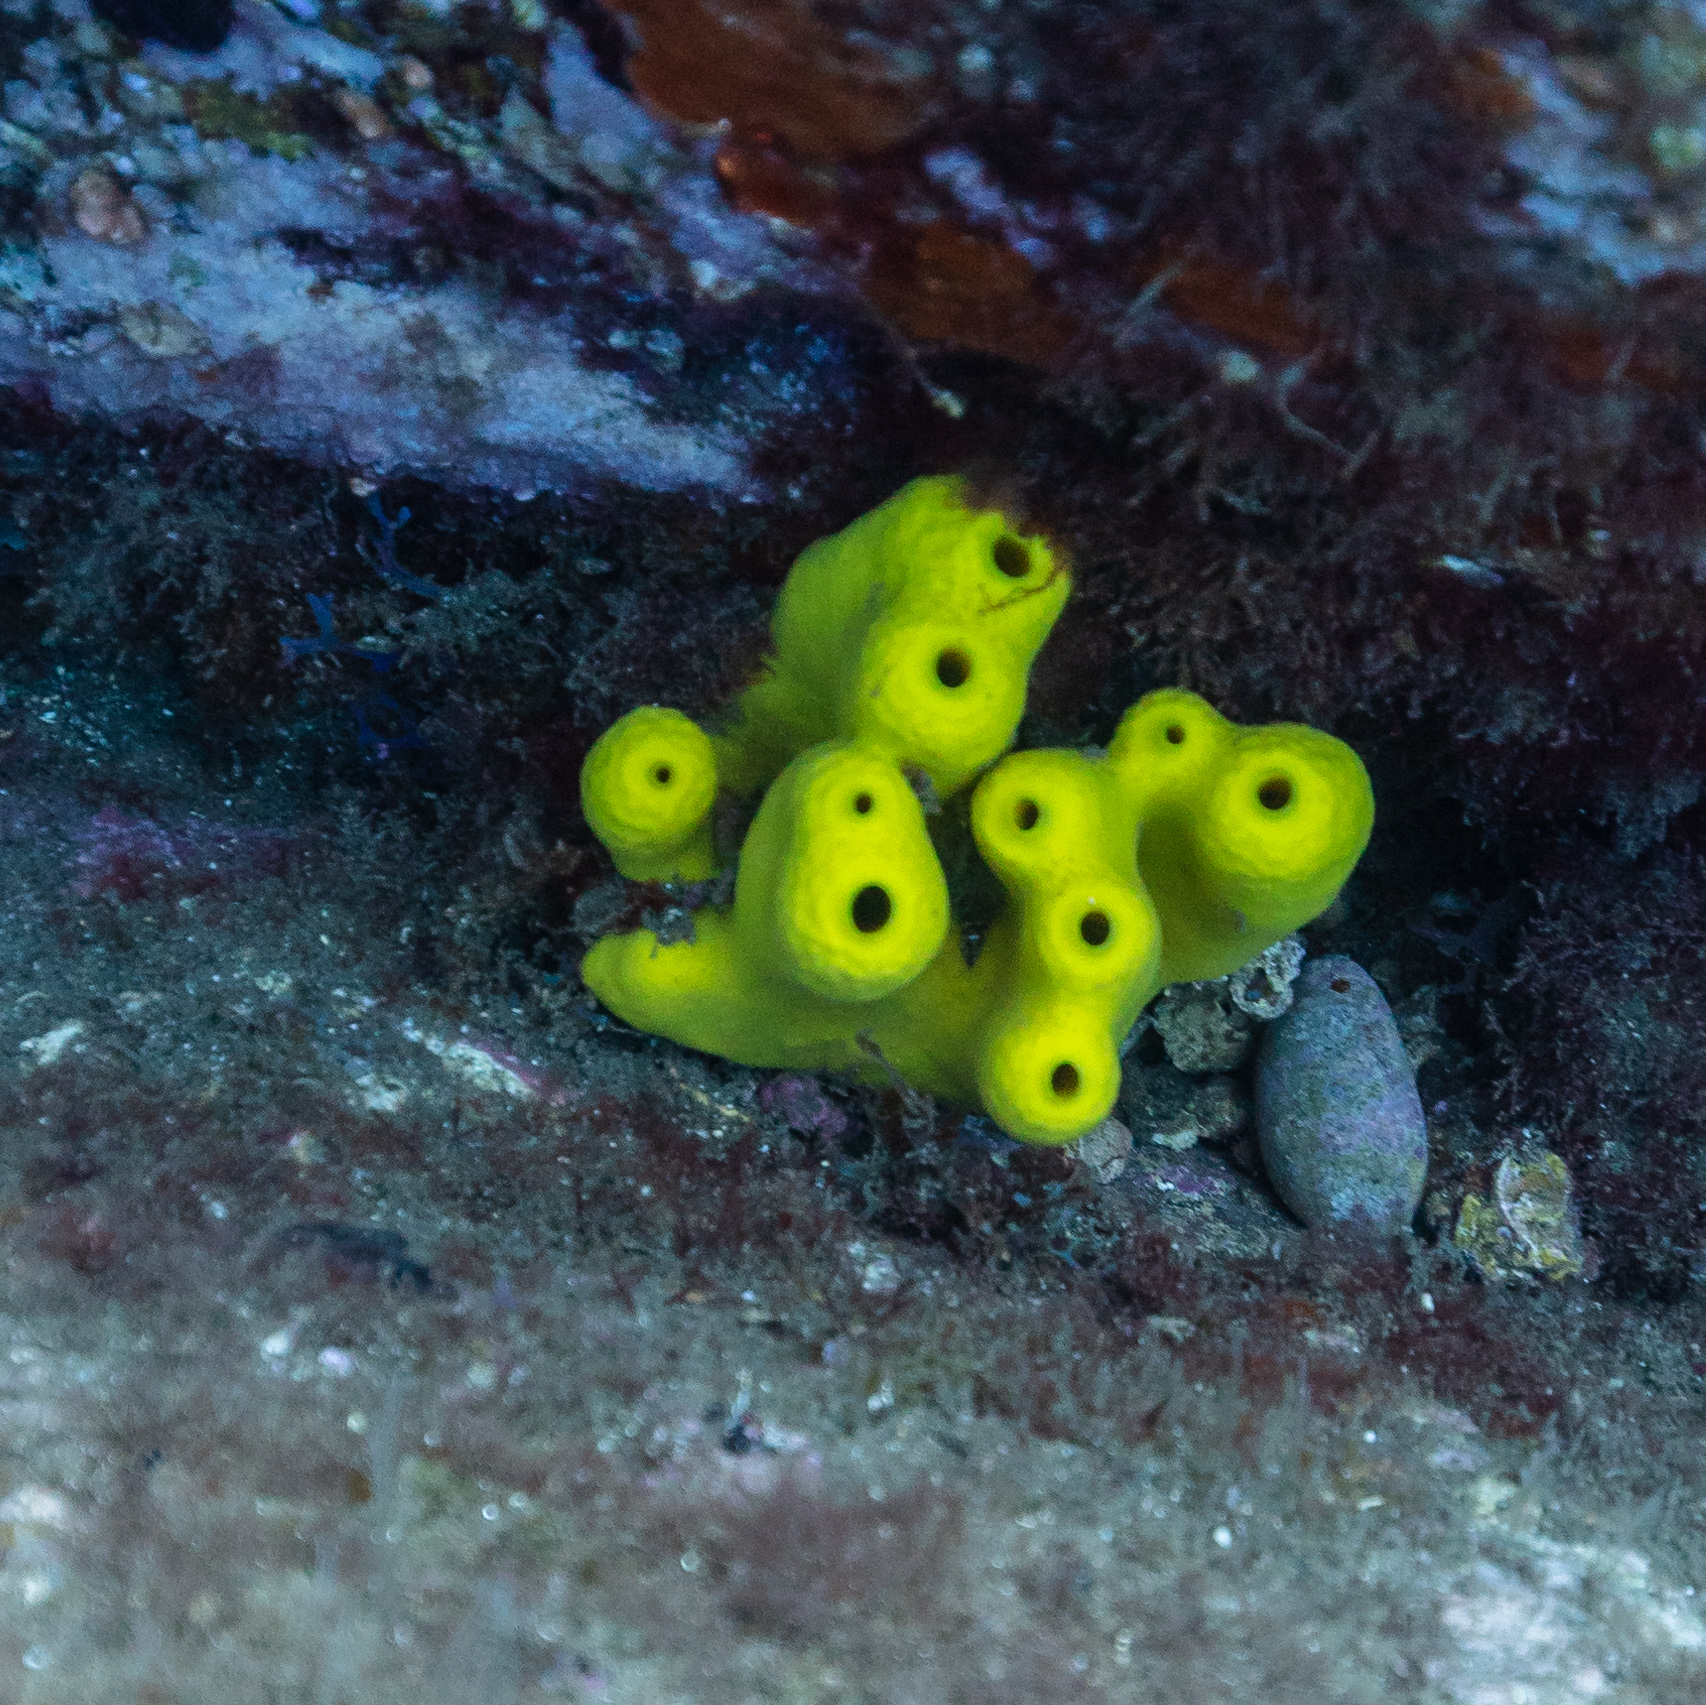 Yellow tube sponge (Aplysina aerophoba), Madeira, Portugal.